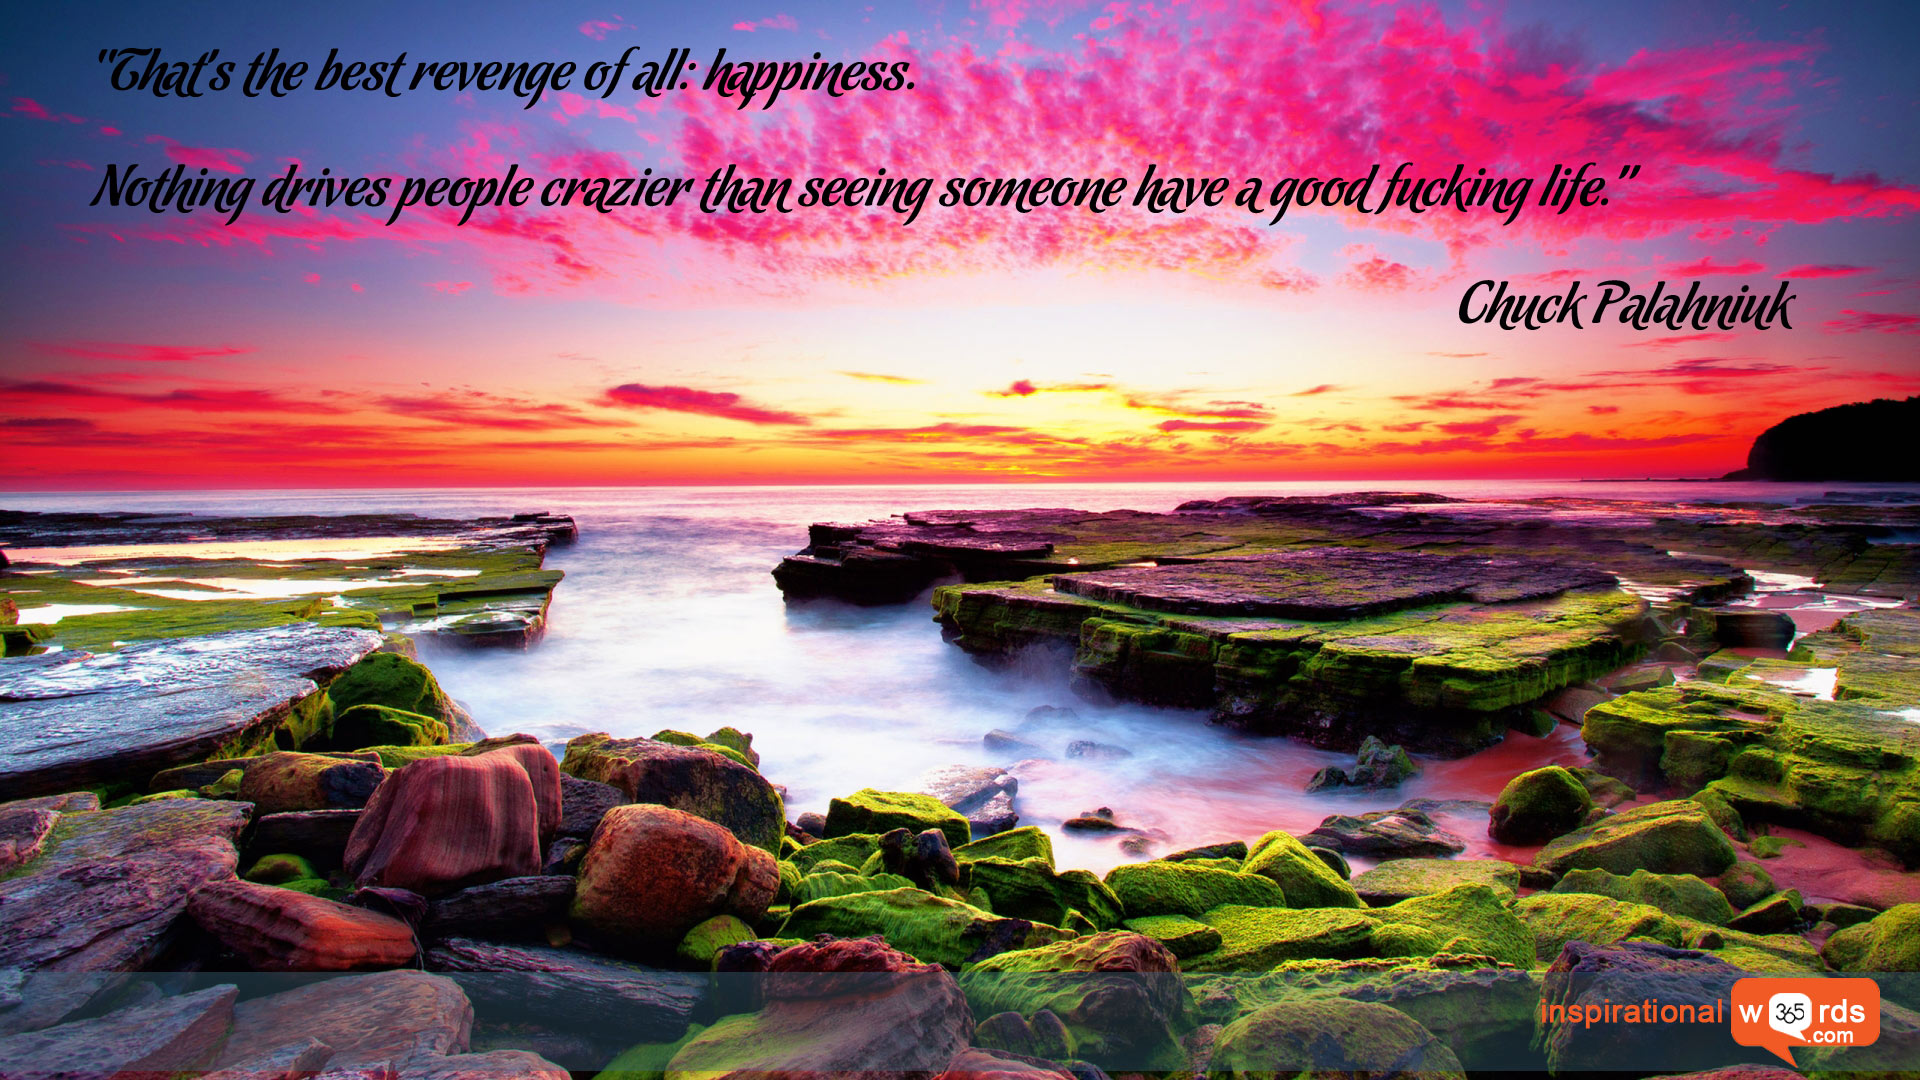 Inspirational Wallpaper Quote by Chuck Palahniuk